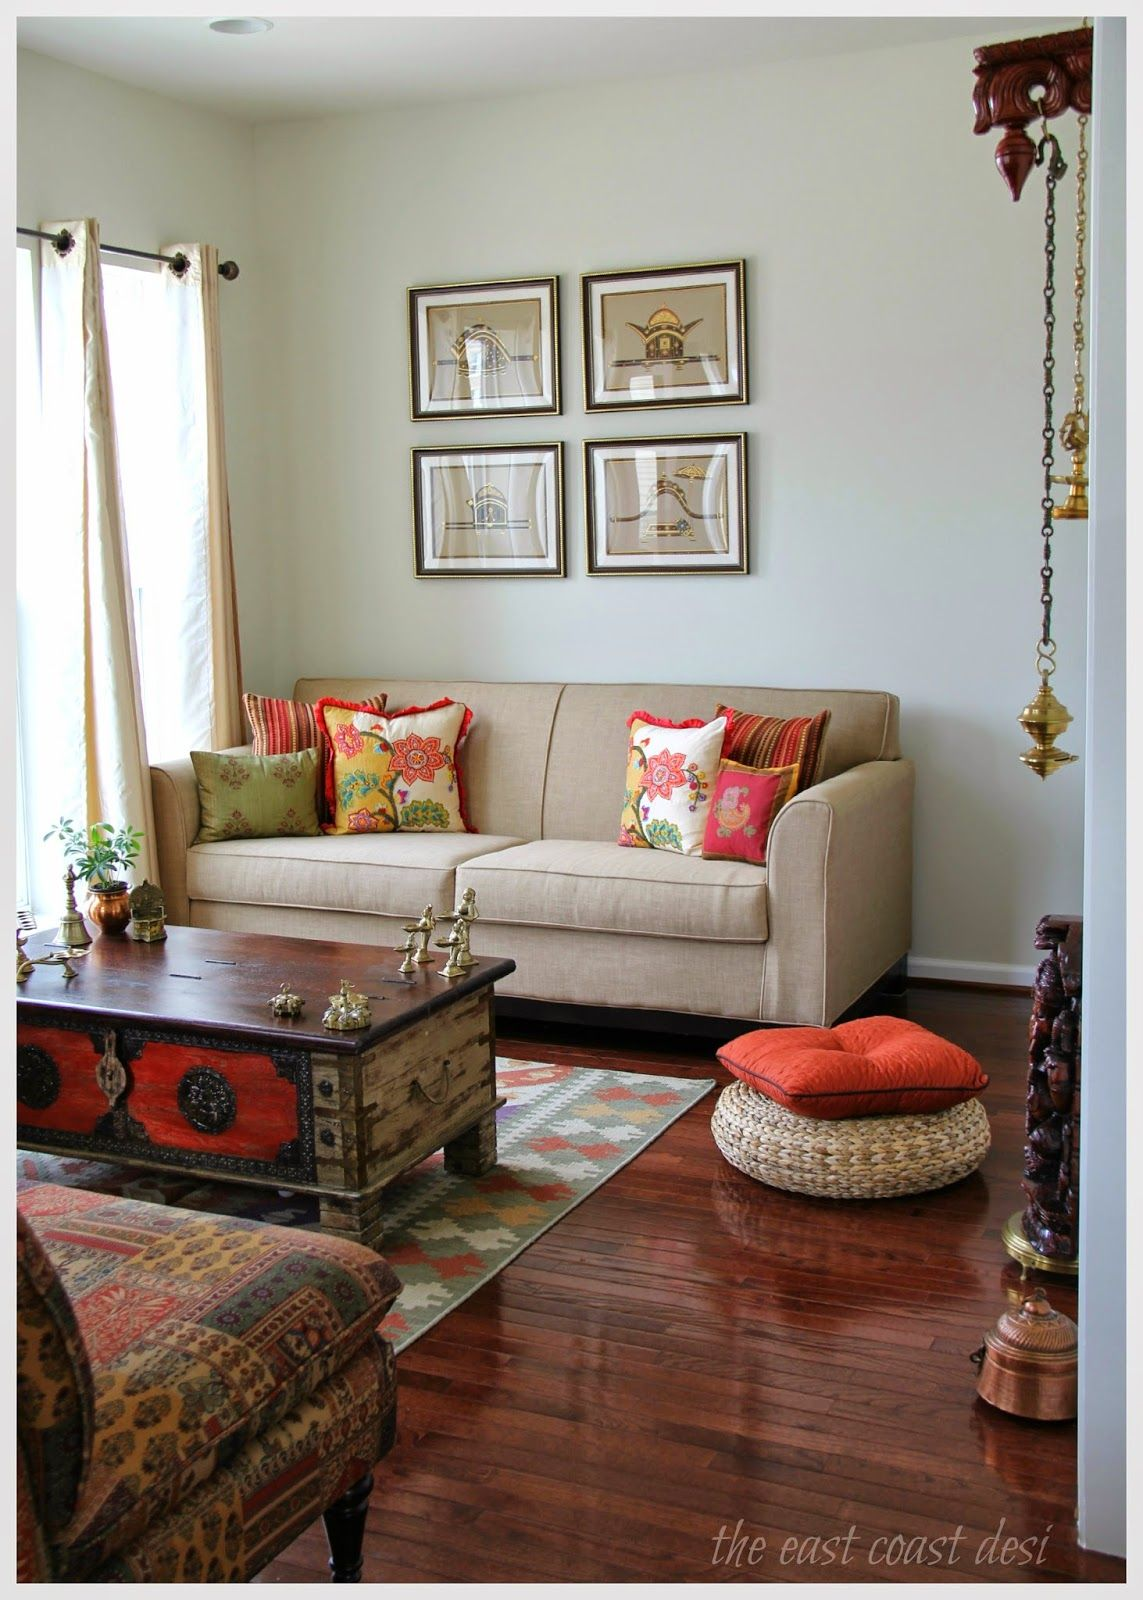 This is exactly how my drawing room will look like Asian decor living room